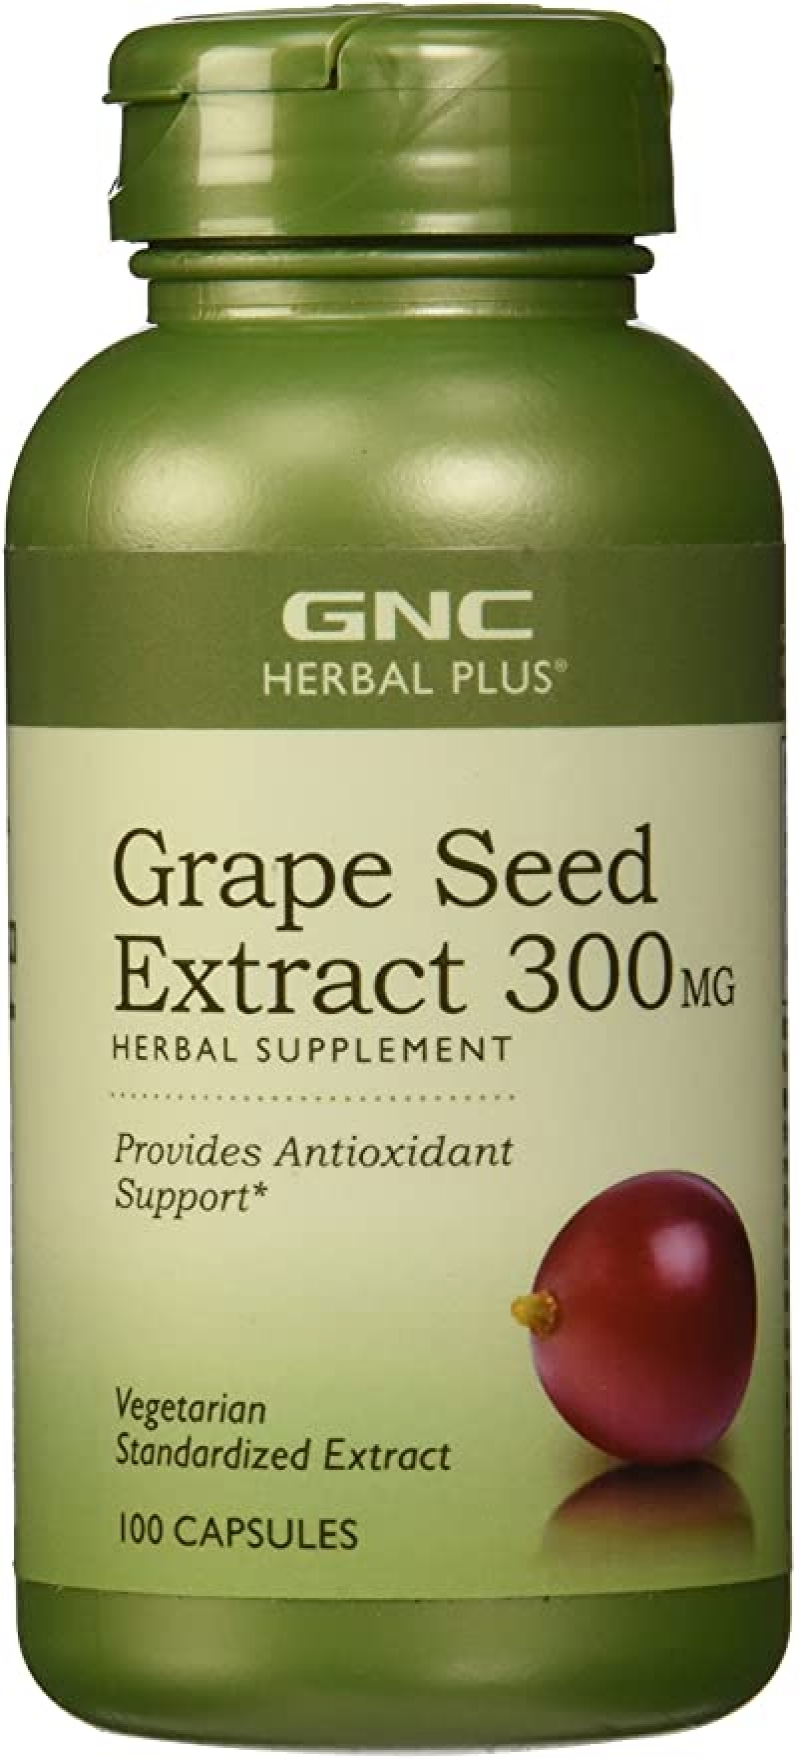 ihocon: GNC Herbal Plus Grape Seed Extract for Antioxidant Support, 300 mg - 100 Count   葡萄籽